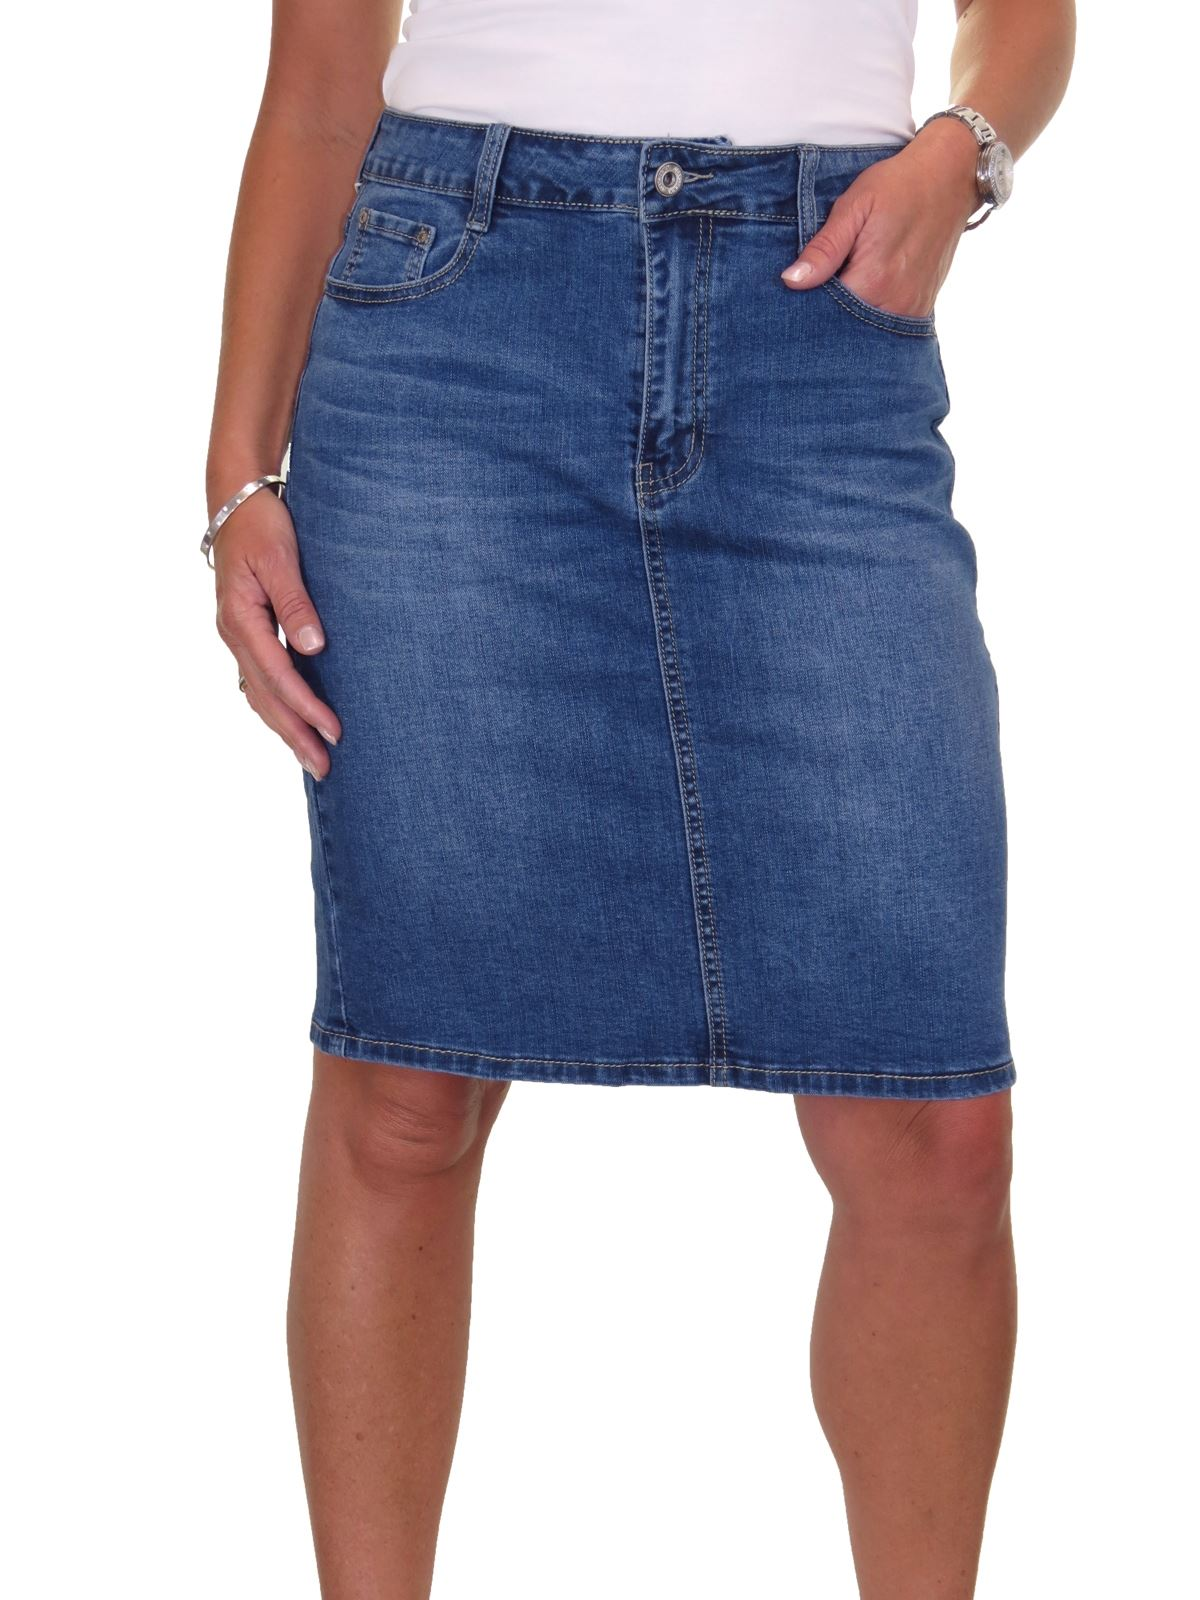 ICE-Stretch-Denim-Above-Knee-Jeans-Pencil-Skirt-Faded-Wash-10-18 thumbnail 9